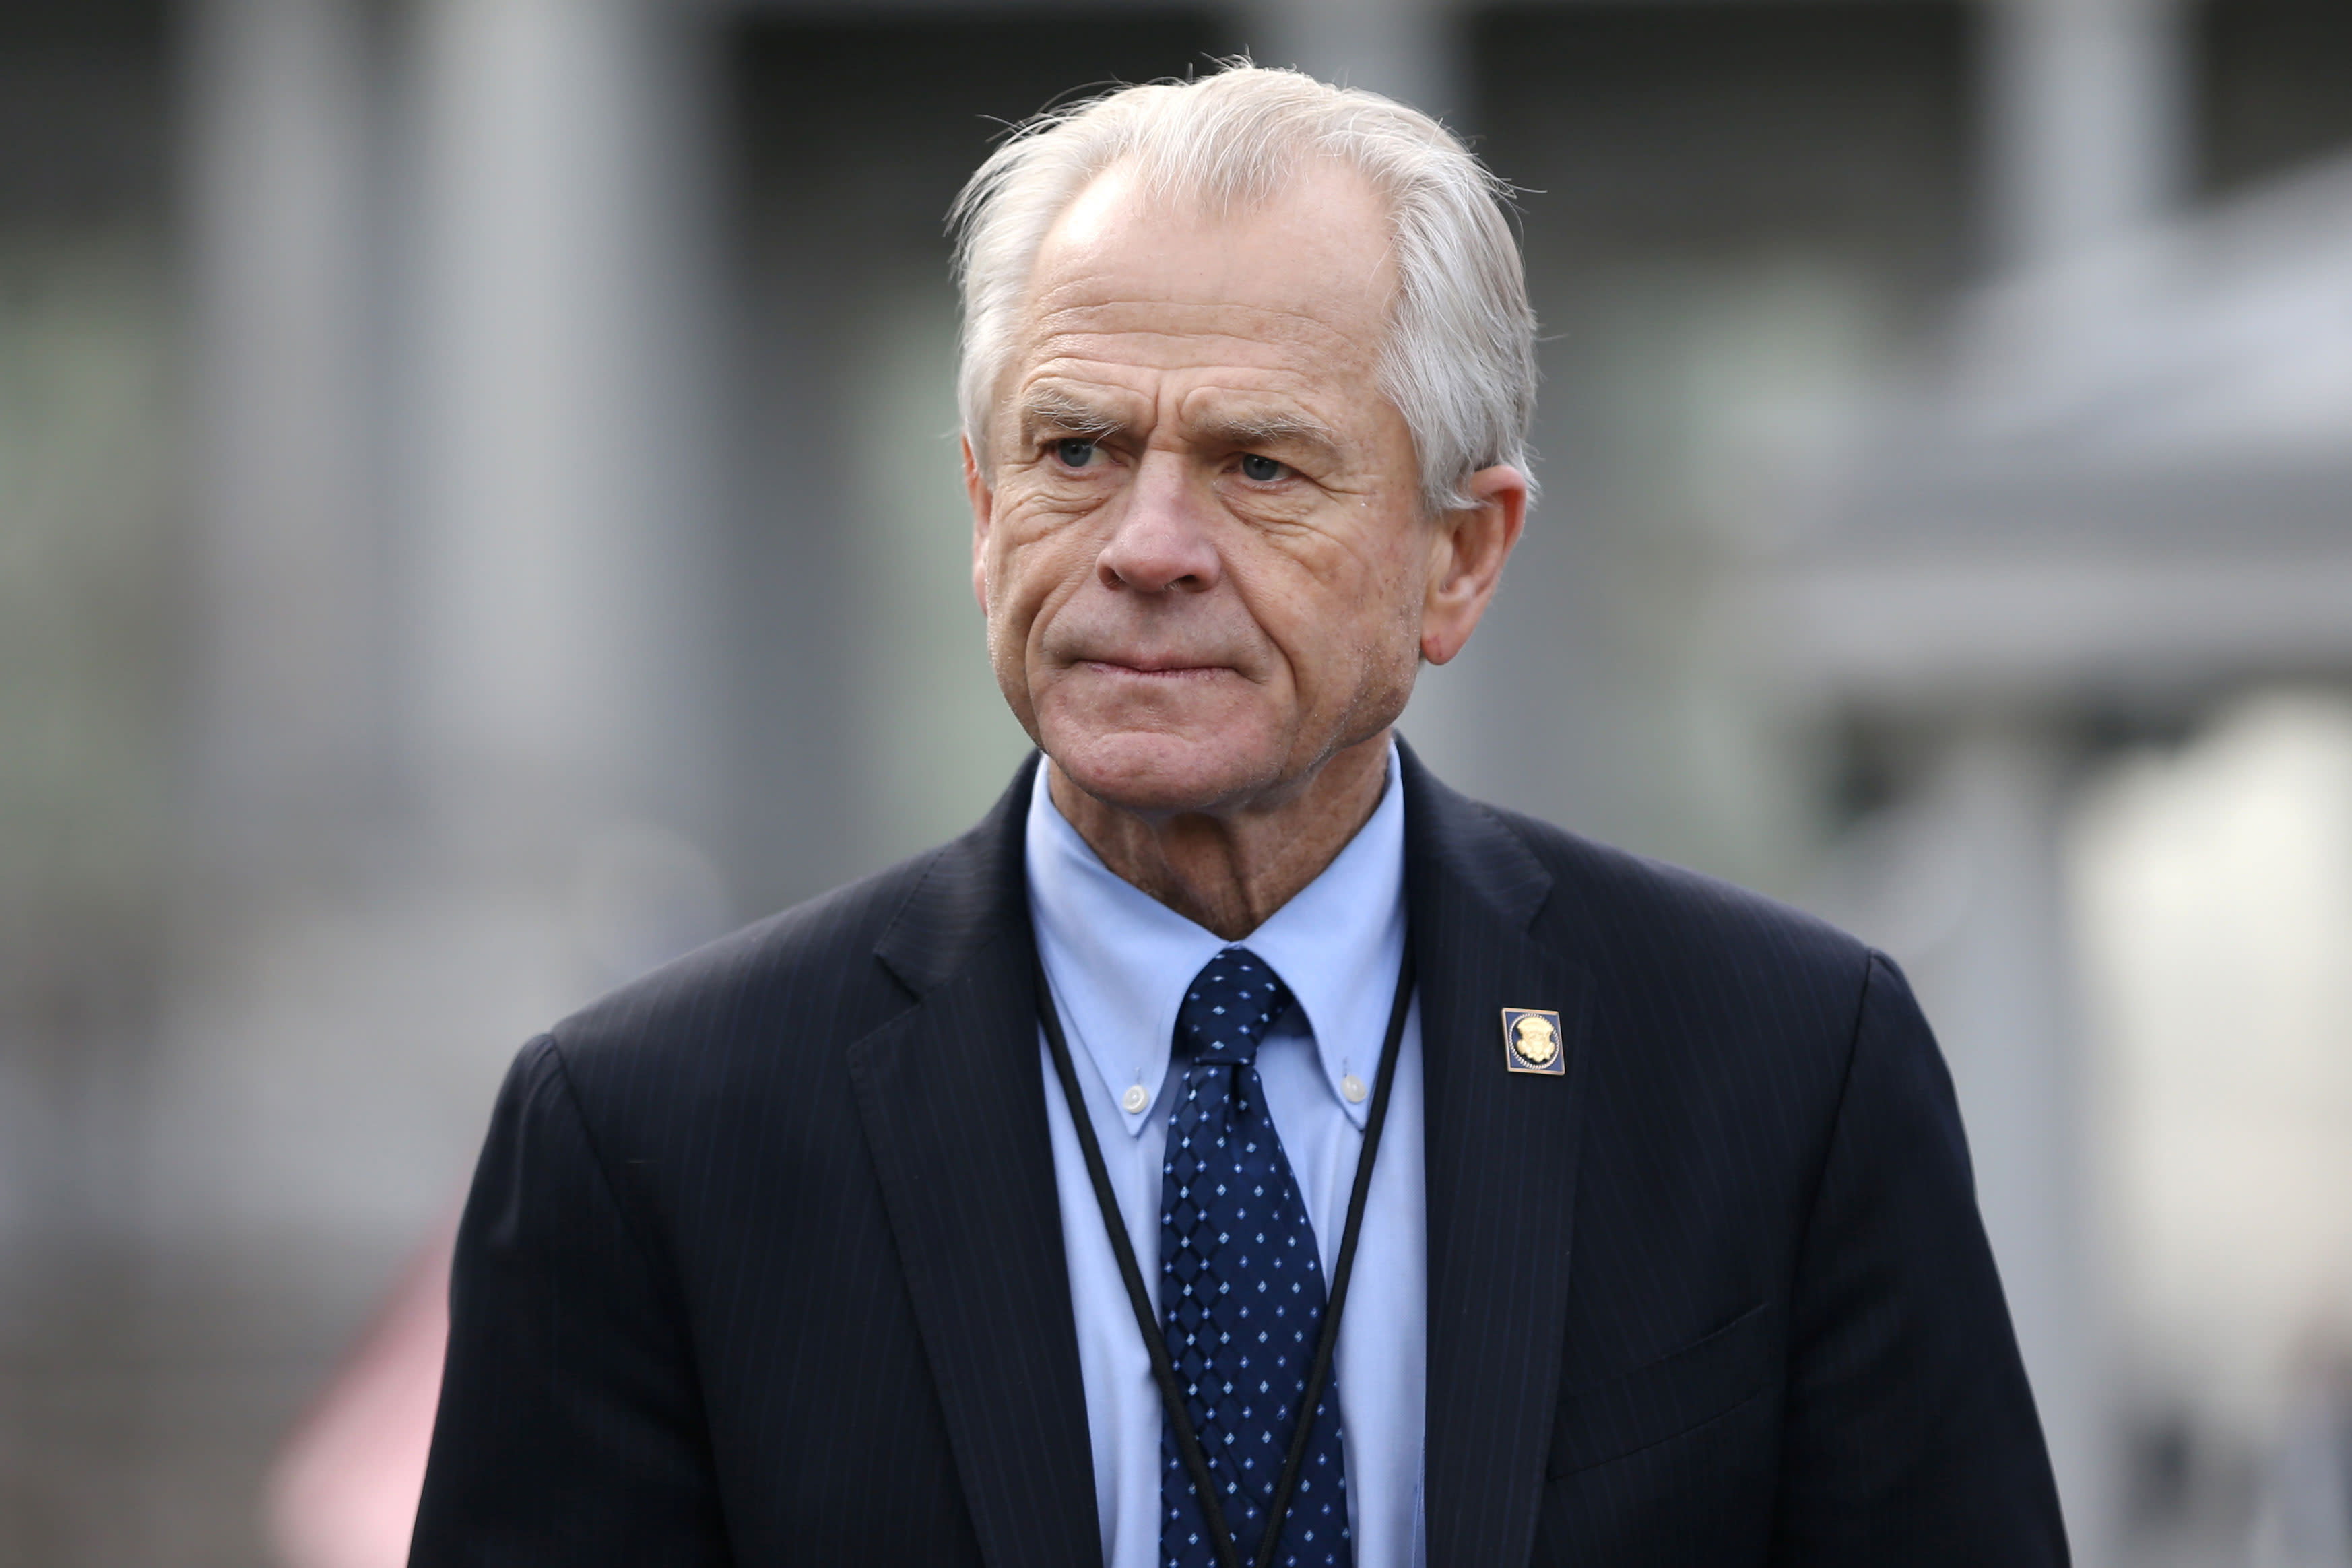 Peter Navarro puts Amazon and eBay on notice: The China trade deal cracks down on counterfeits